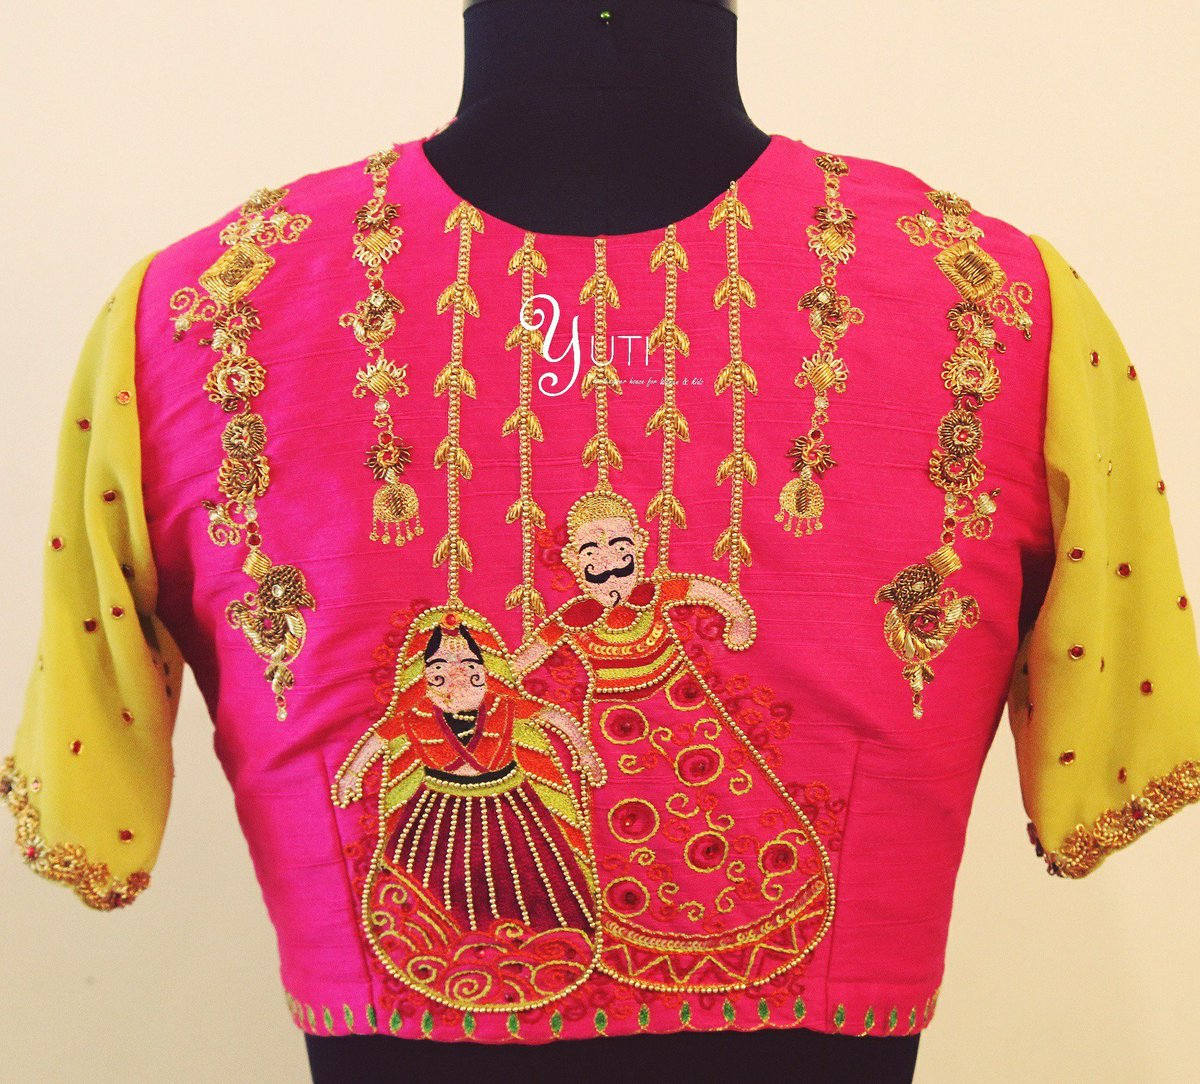 The Dancing Puppets by YUTI!